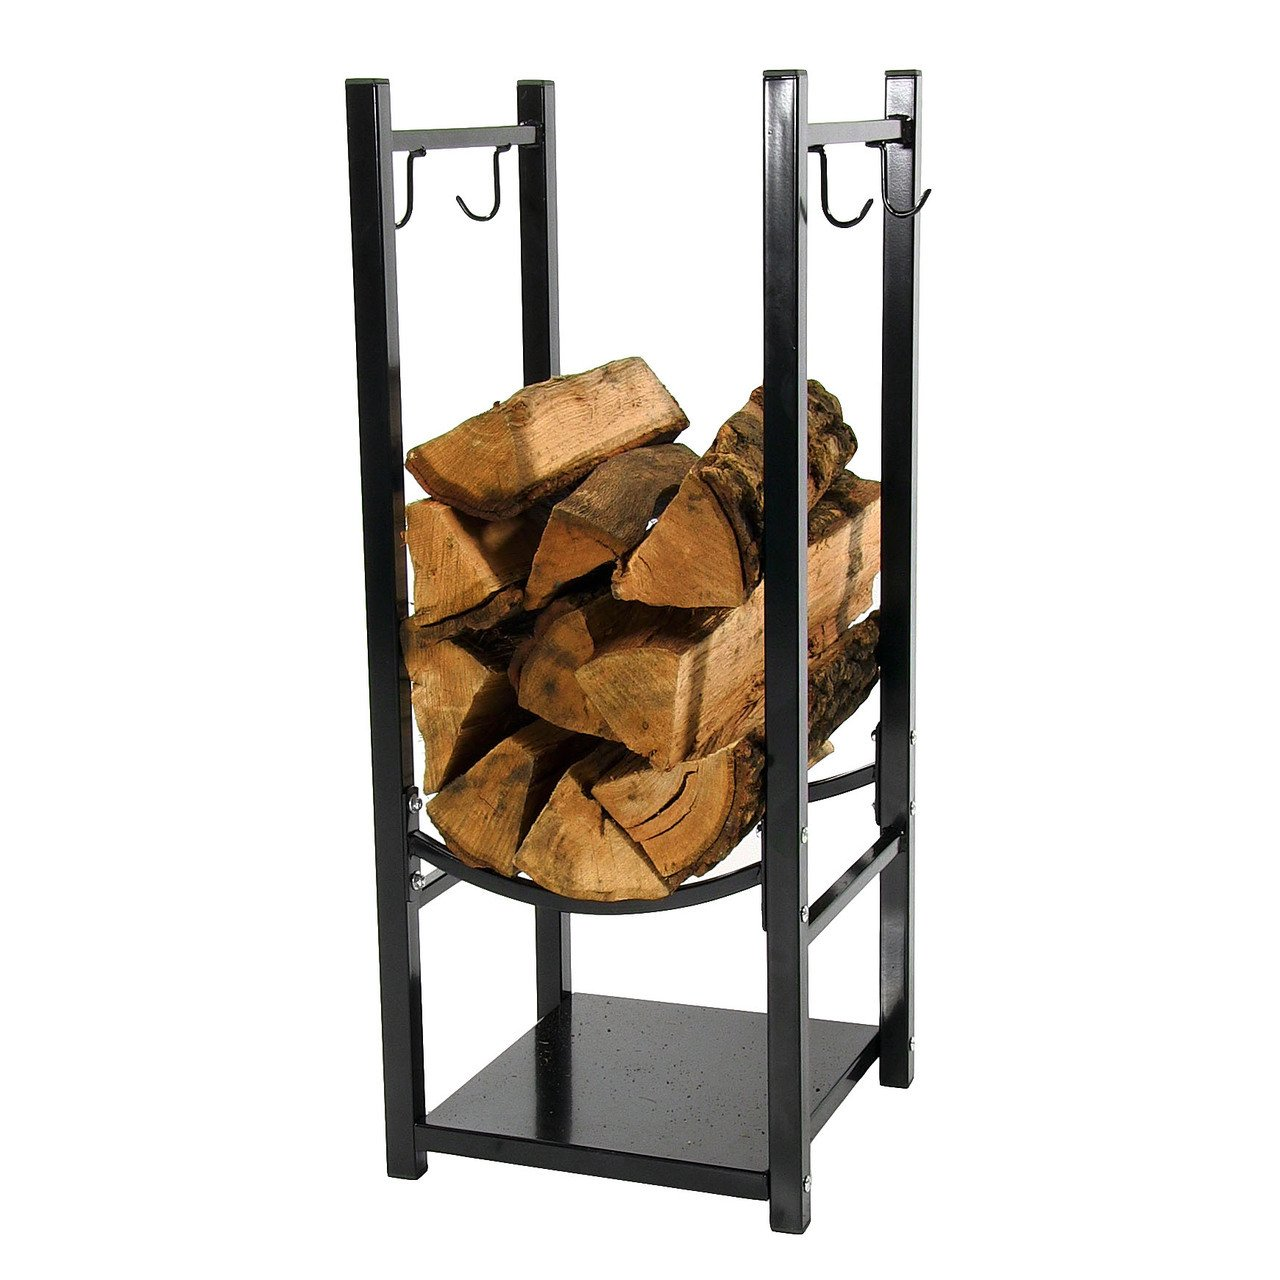 Sunnydaze 13-Inch Firewood Log Rack with Tool Holders - Indoor or Outdoor Black Powder-Coated Steel Wood Storage Stacker - Metal Holder for Logs for Fireplace, Stove and Fire Pit by Sunnydaze Decor